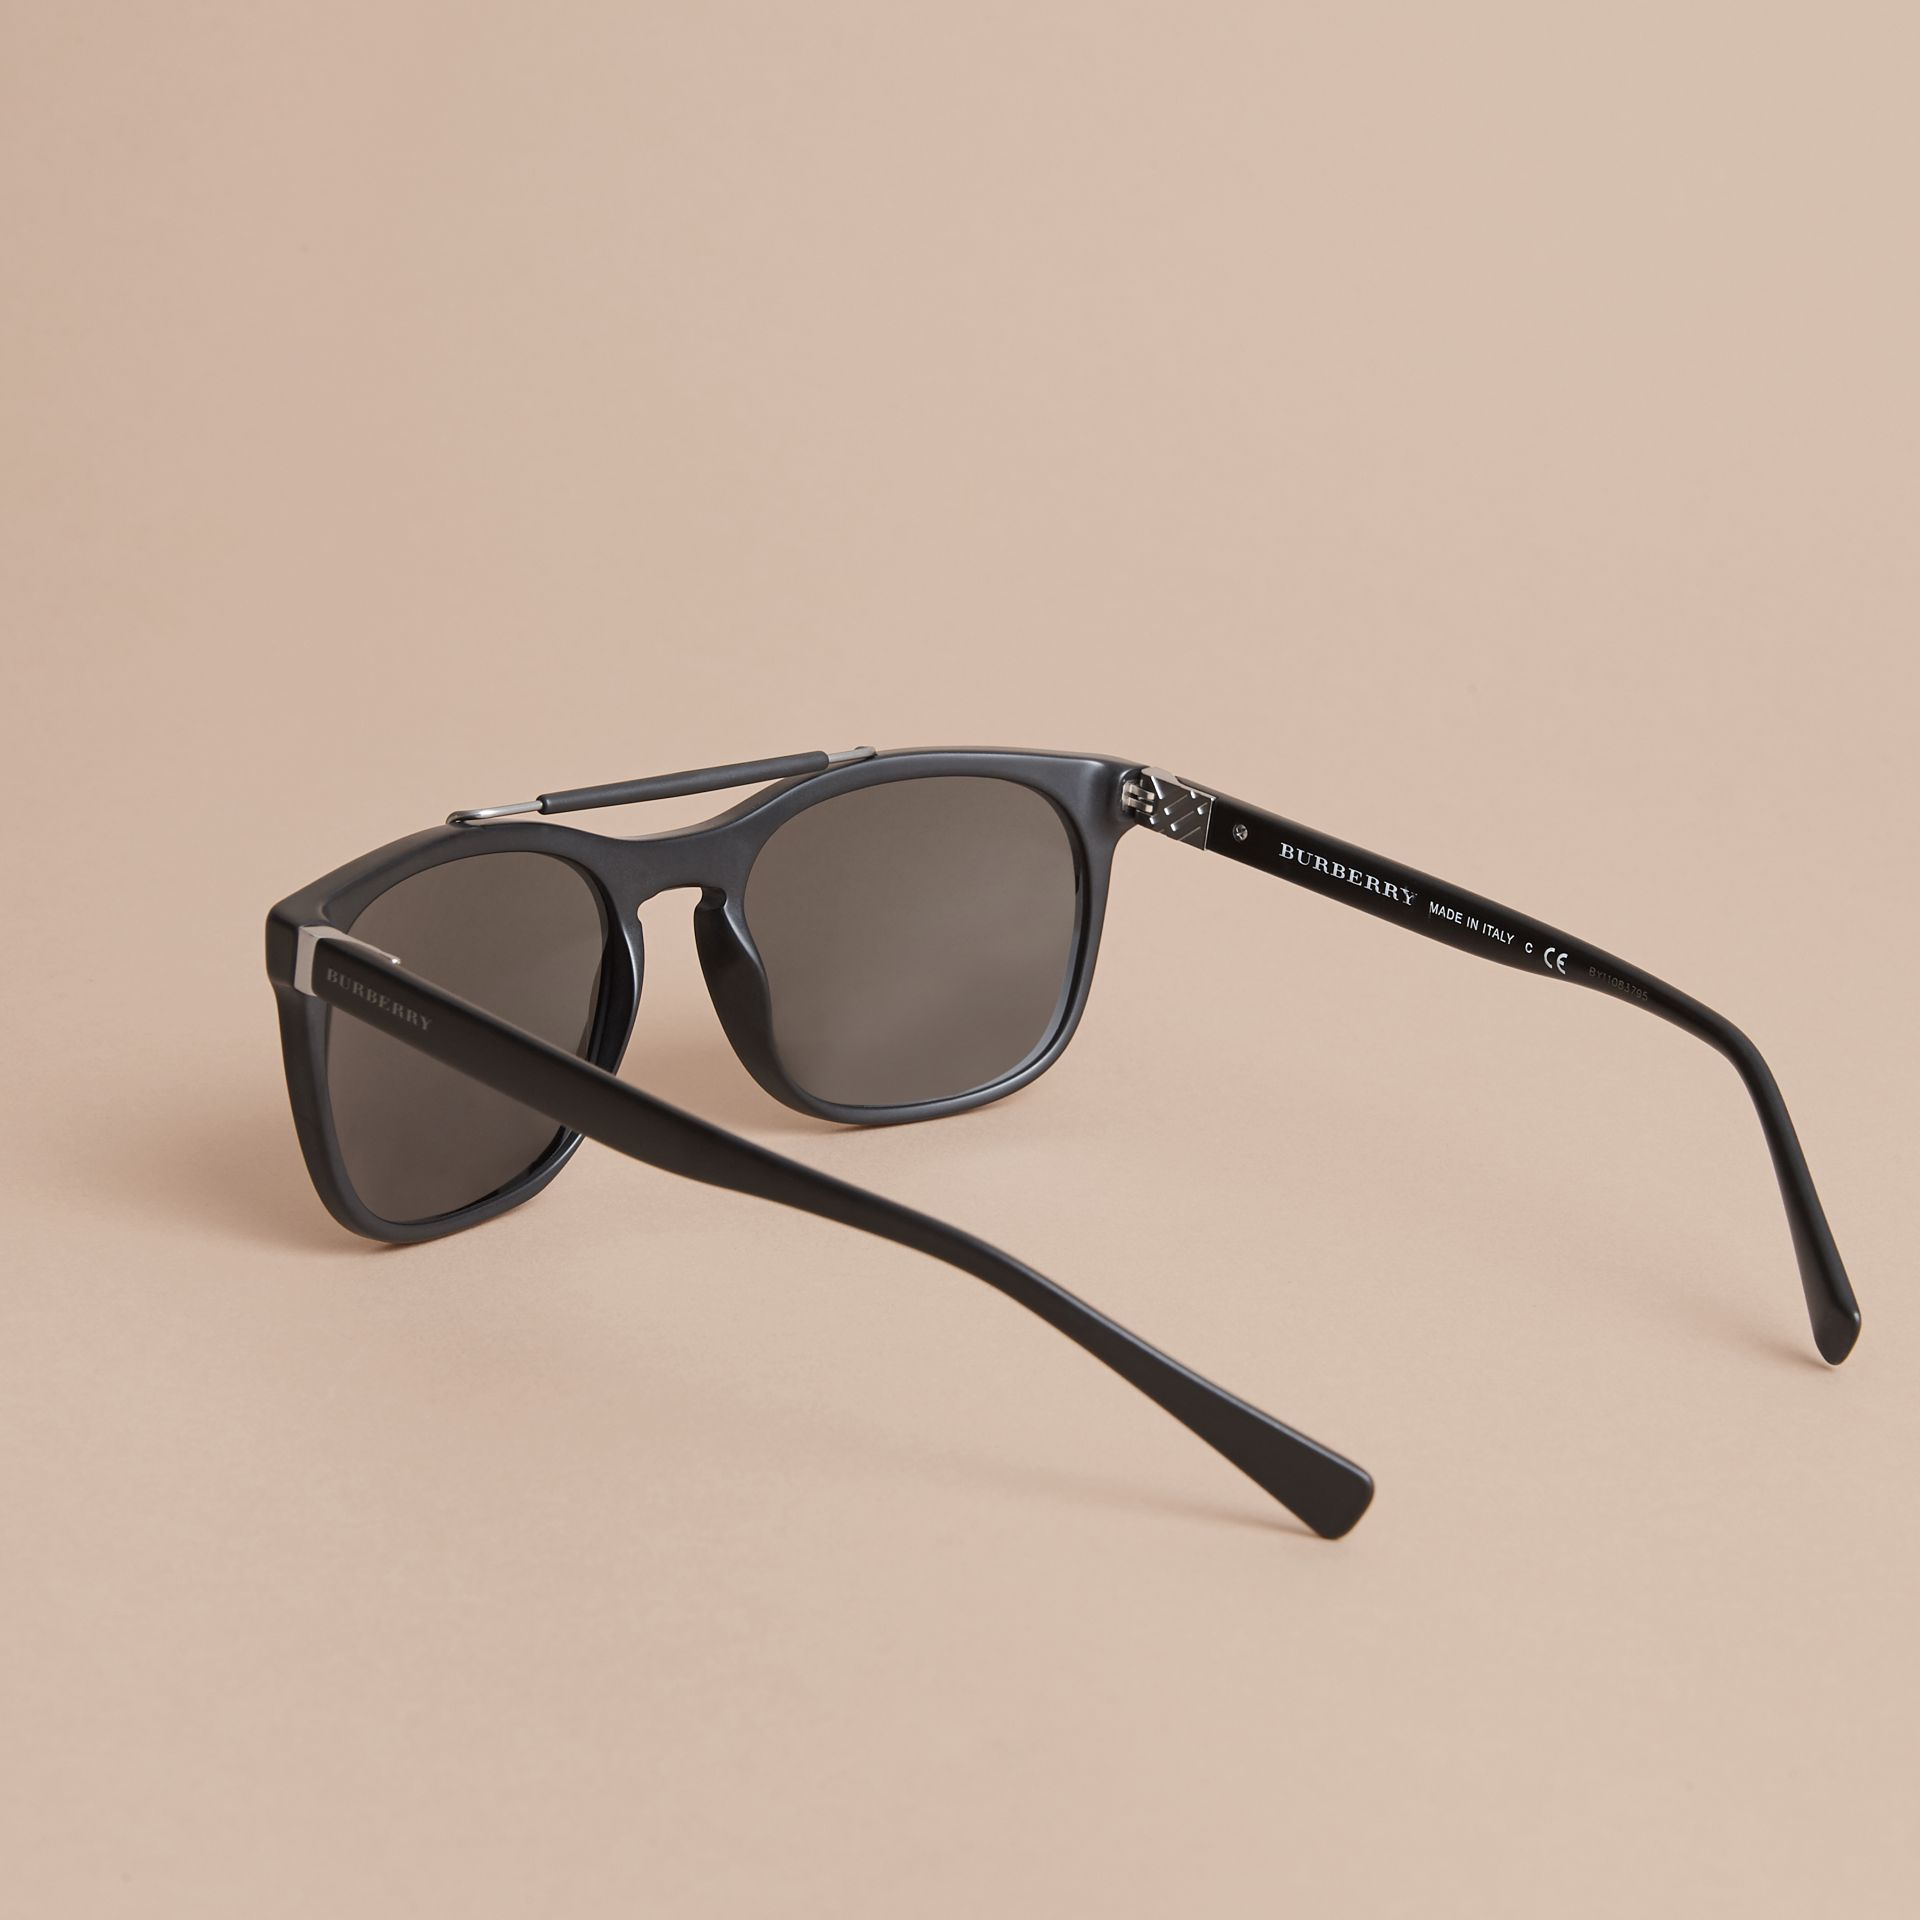 Top Bar Square Frame Sunglasses in Black - Men | Burberry Australia - gallery image 4